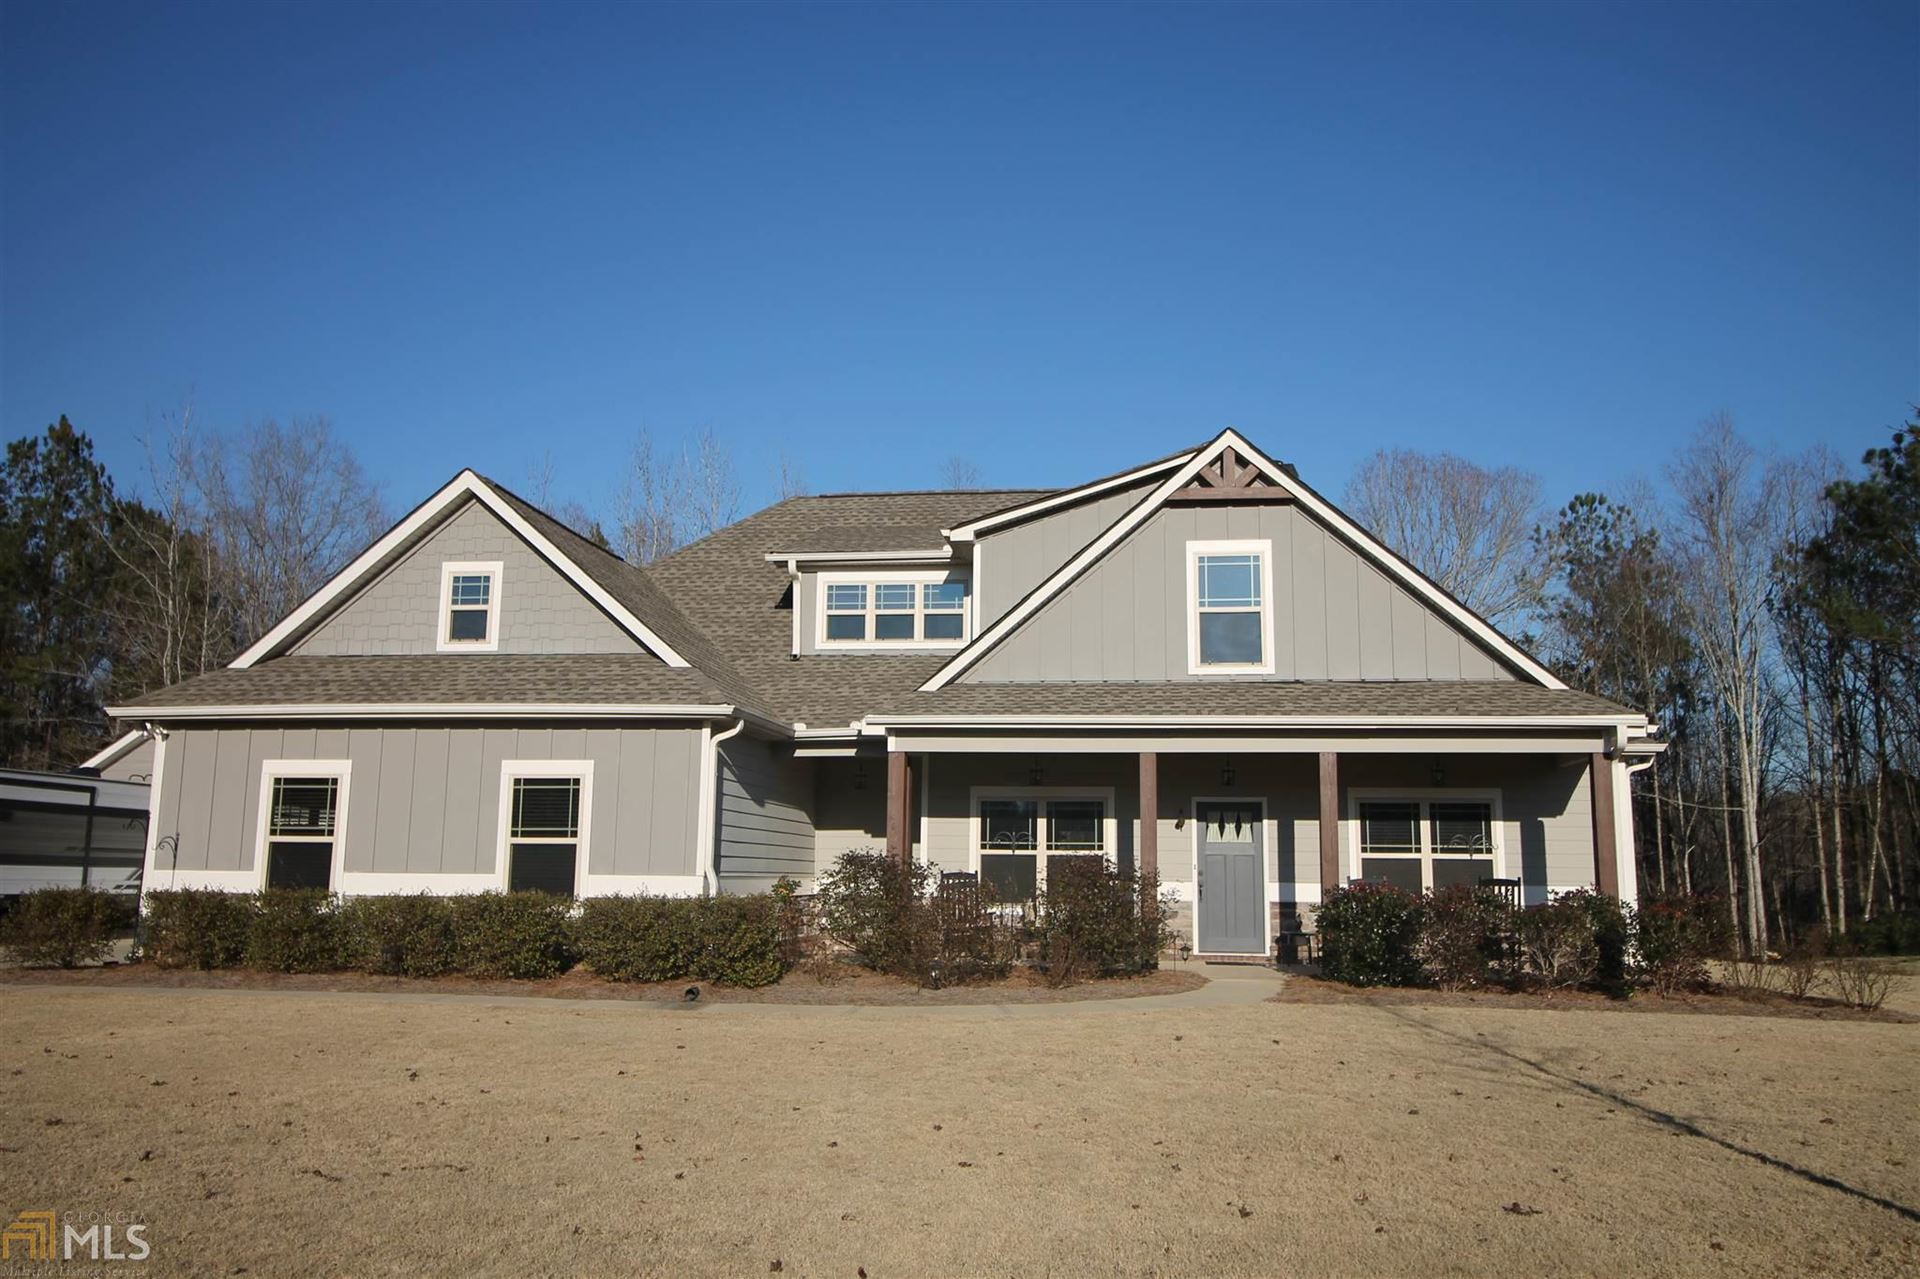 Photo of 1051 Windsor Creek Dr, Madison, GA 30650 (MLS # 8930588)